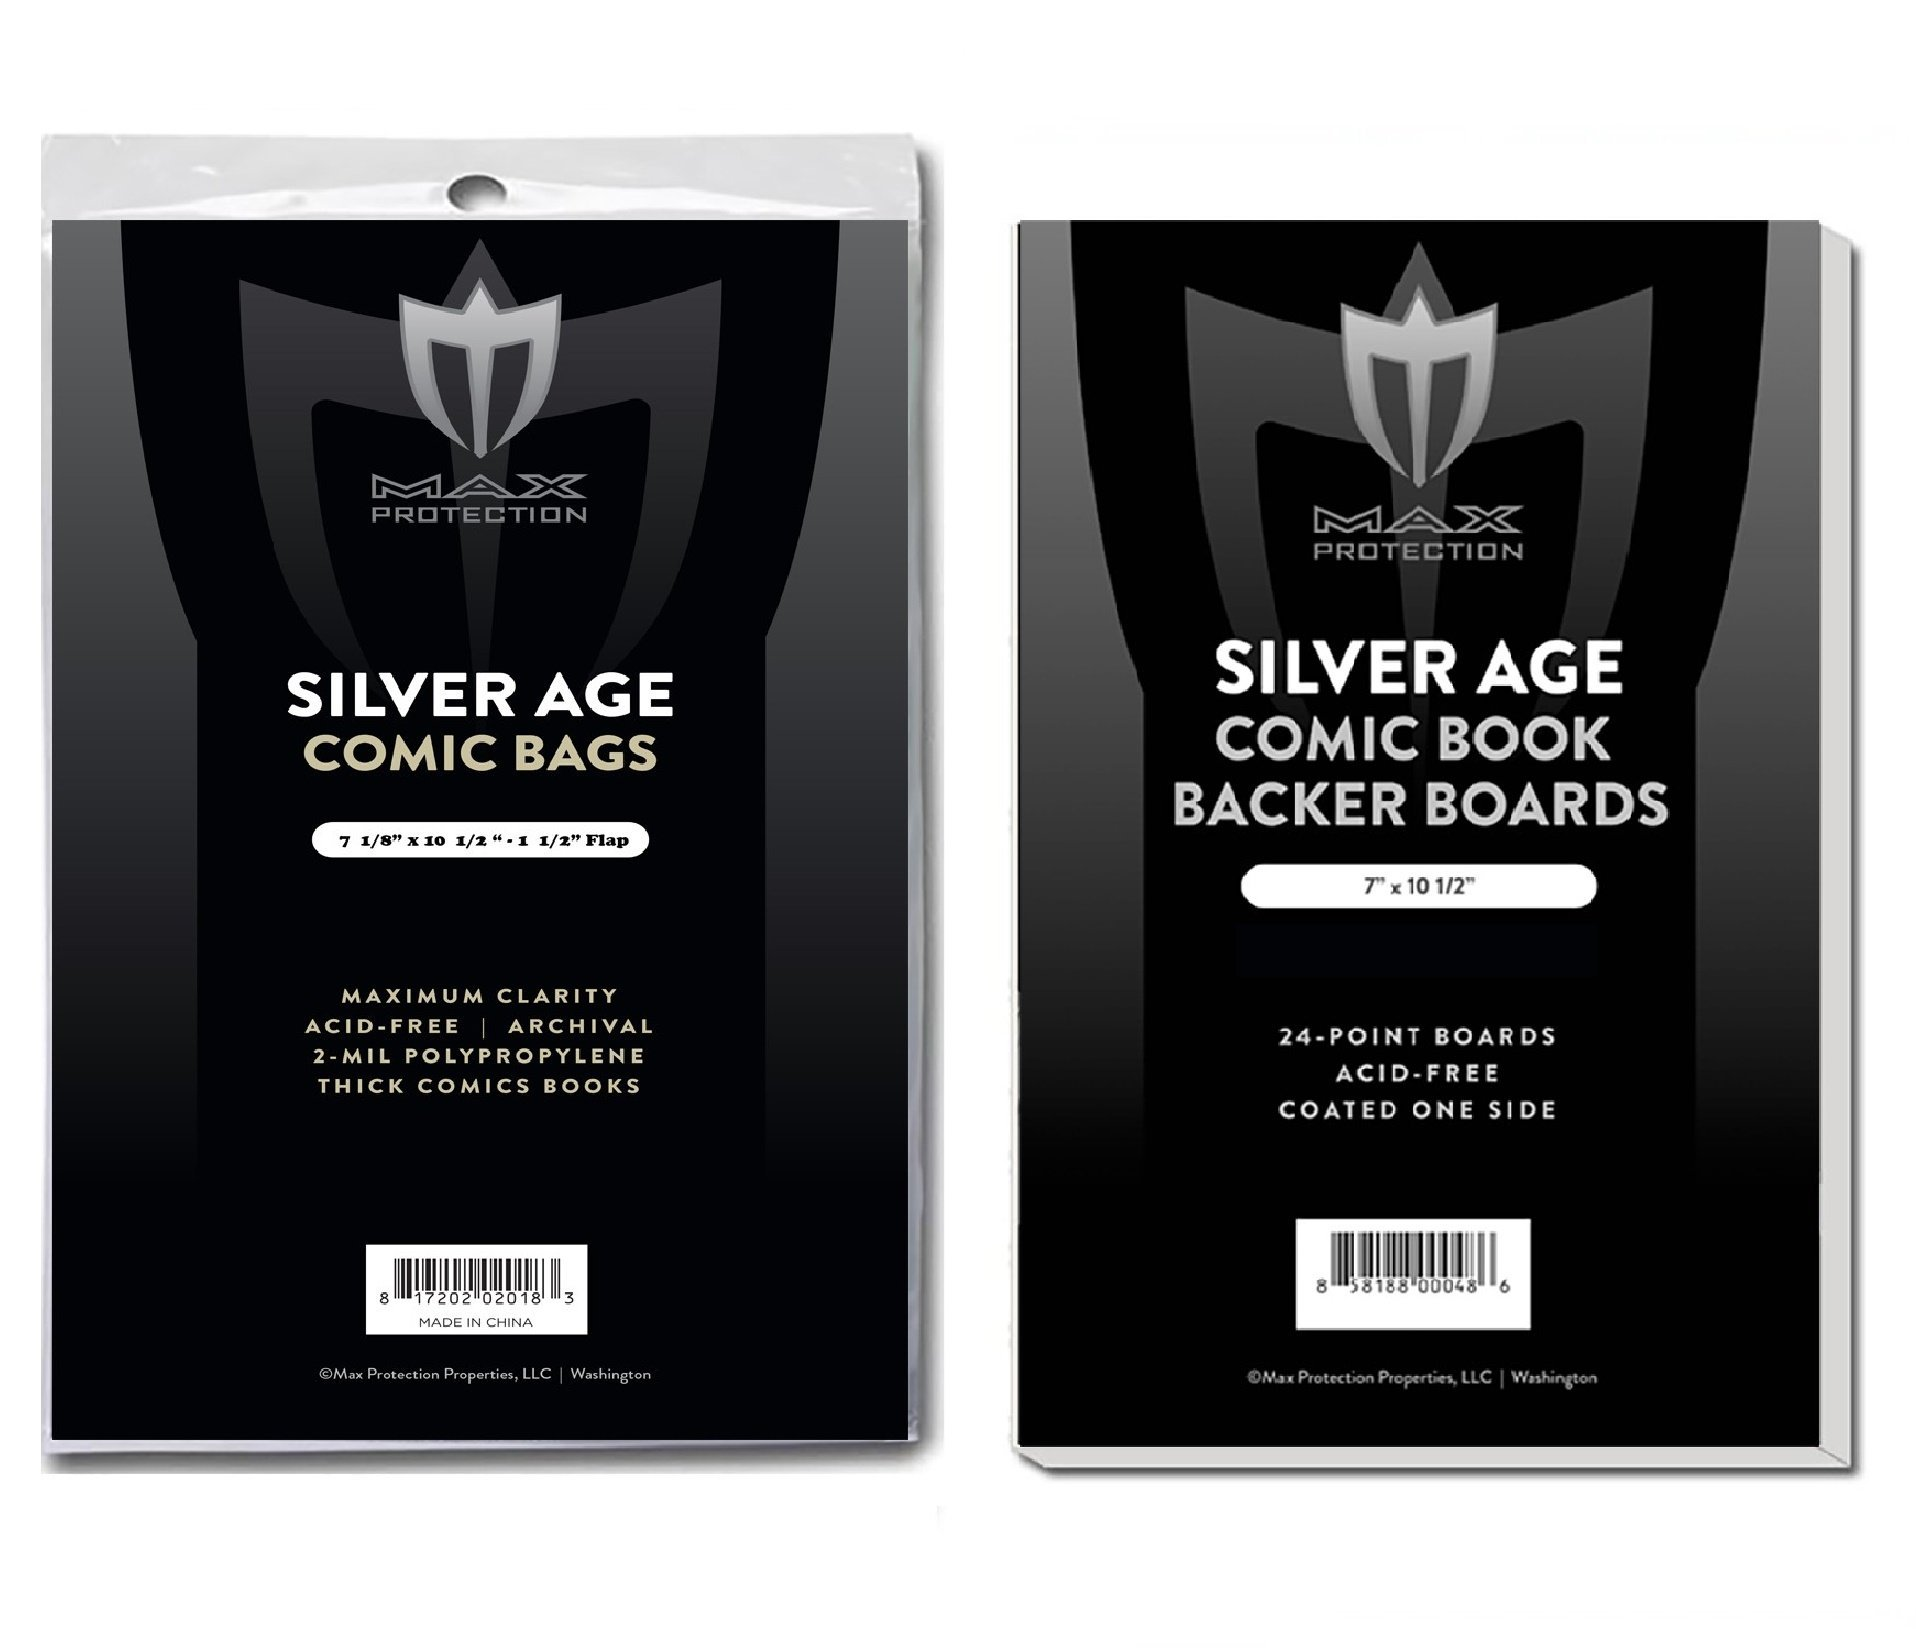 (500) SILVER Size Ultra Clear Comic Book Bags and Boards - by Max Pro (Qty= 500 Bags and 500 Boards)